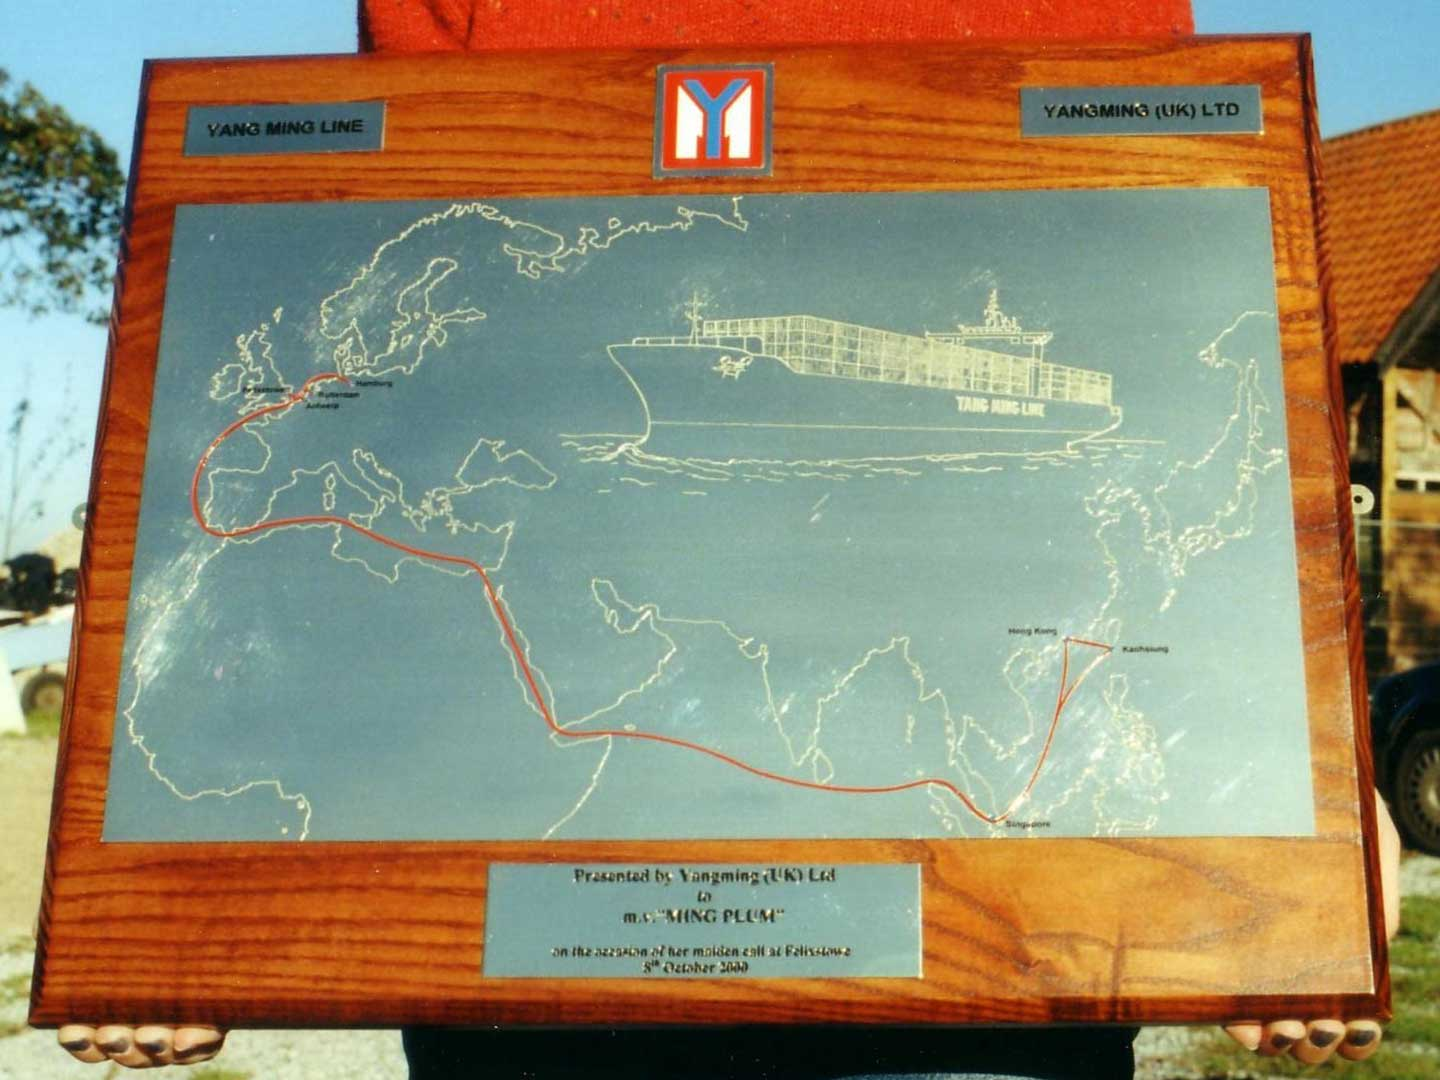 Mounted engraved plaque showing shipping route for Yang Ming Shipping